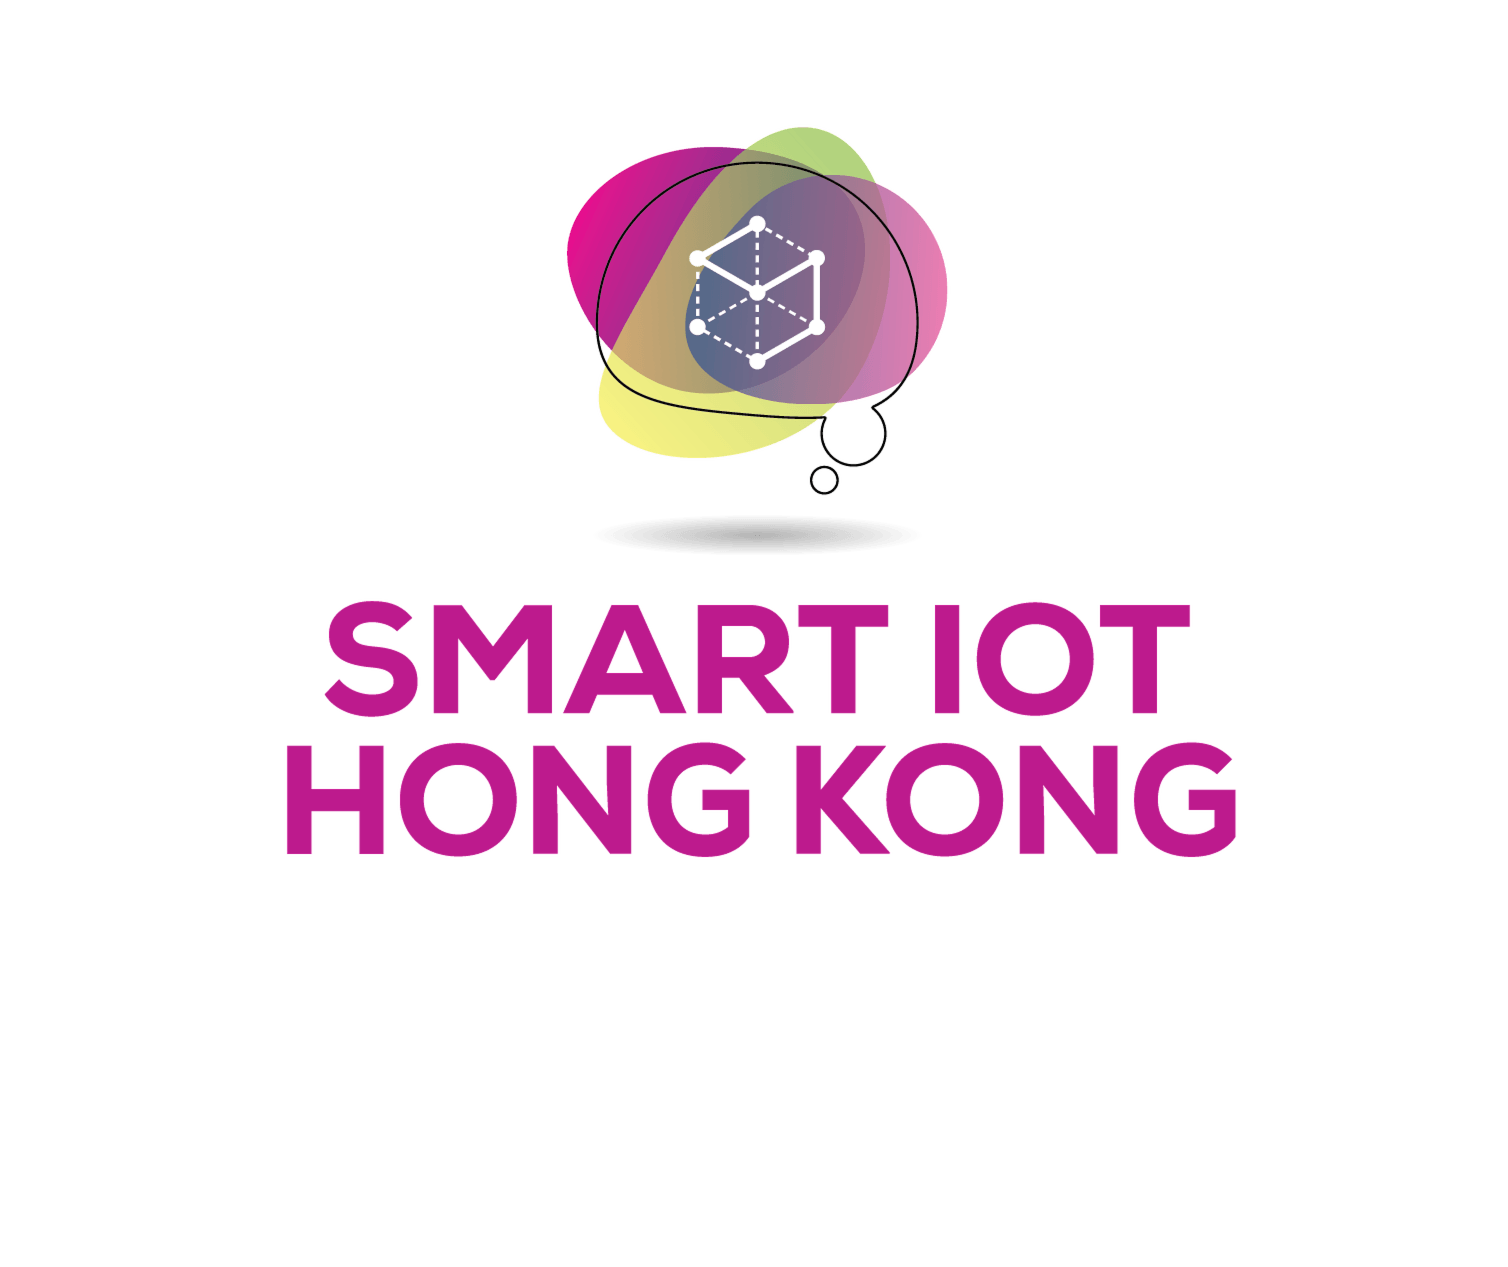 Smart IoT Hong Kong Logo